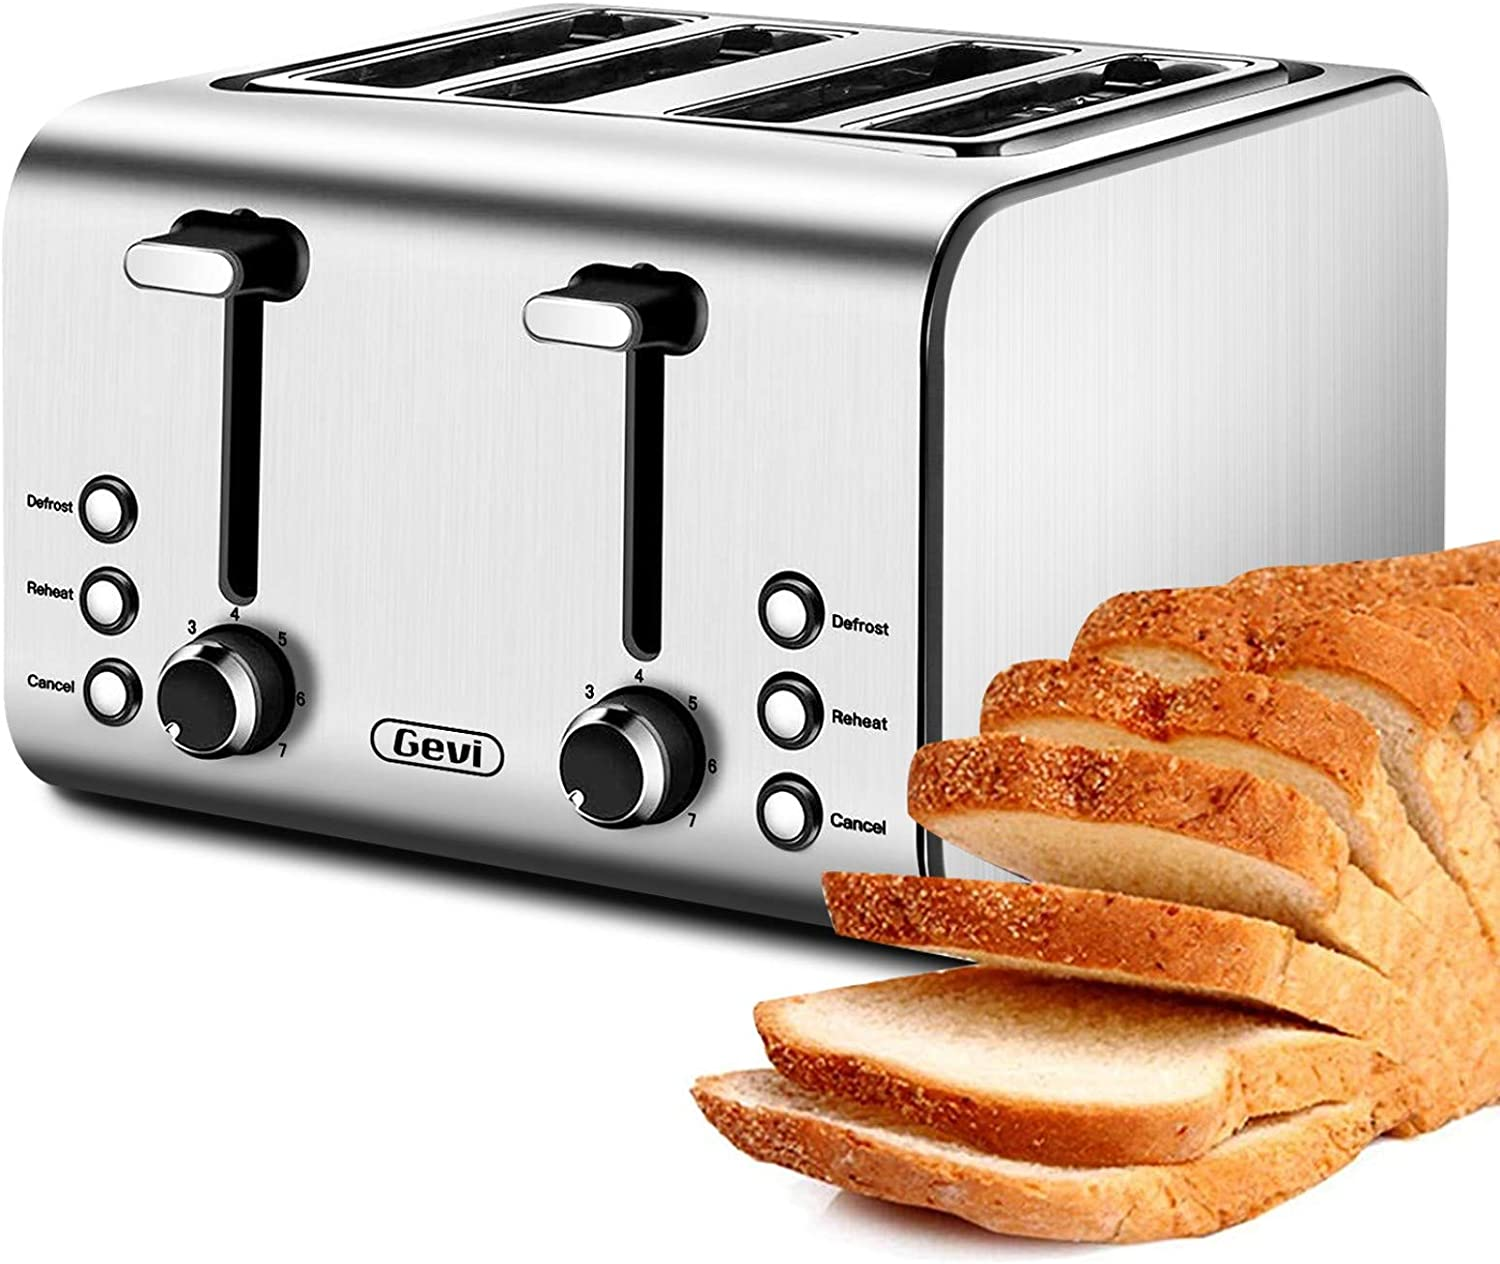 Toaster 4 Slice, Stainless Steel Extra-Wide Slot Toaster with Dual Control Panels of Bagel/Defrost/Cancel Function, 6 Toasting Bread Shade Settings, Espresso Machines Fast Heating, 1350W